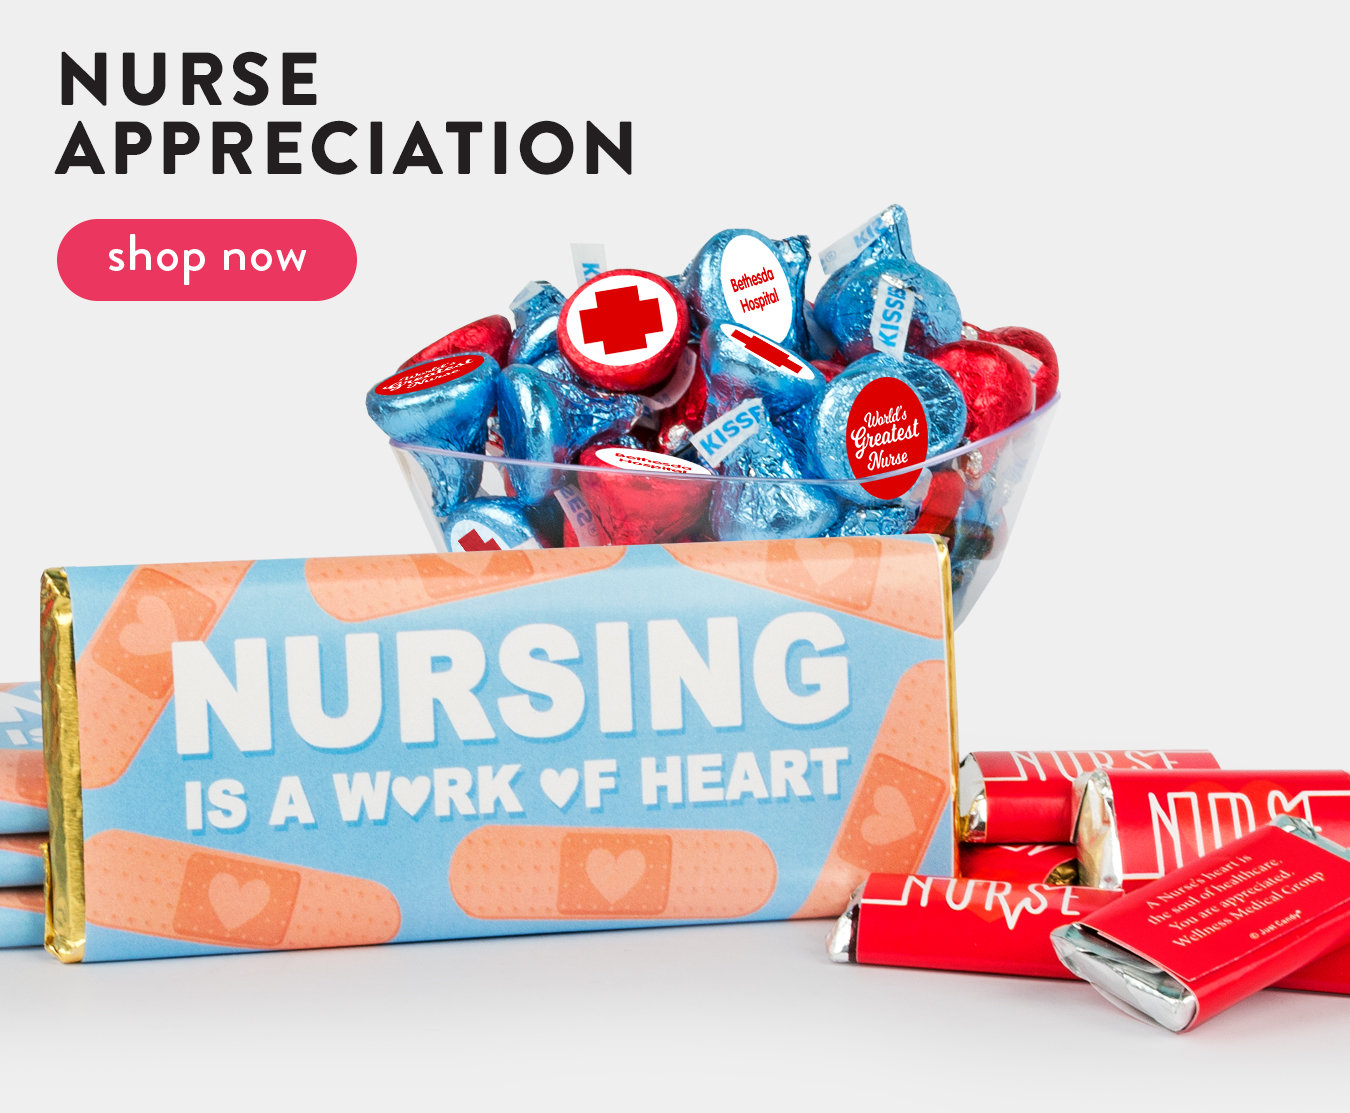 Nurse Appreciation